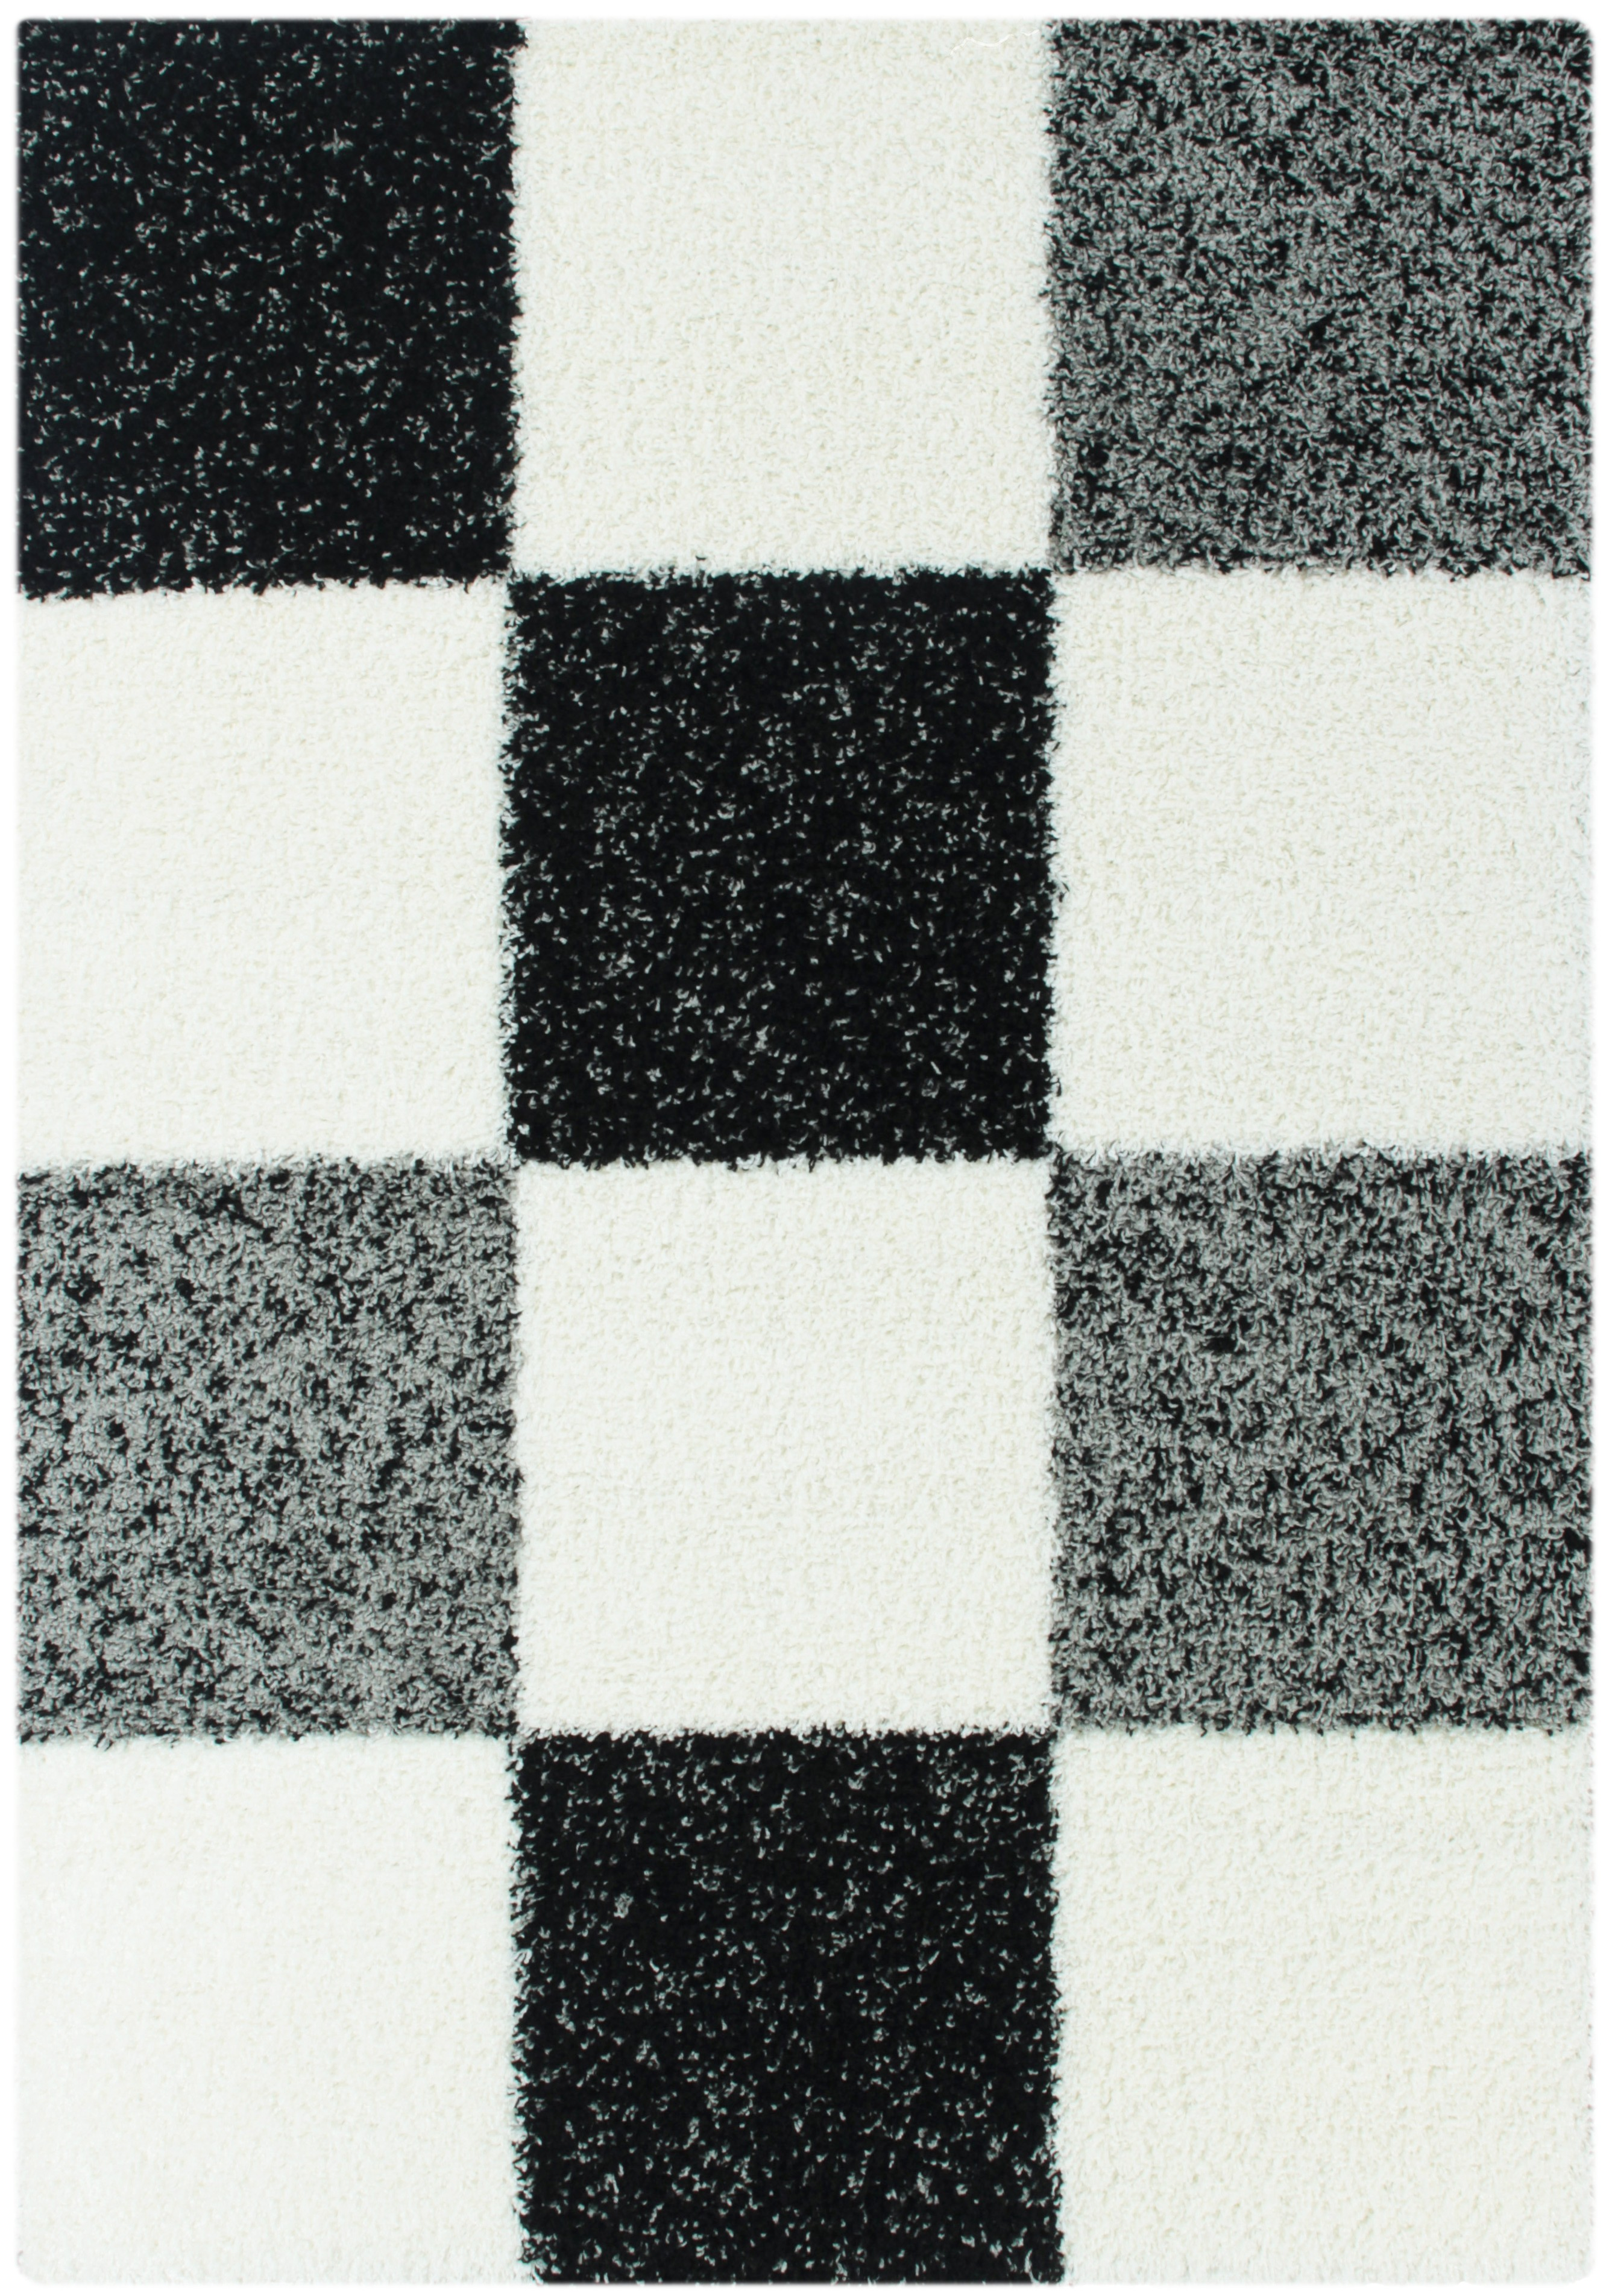 tapis shaggy longues m ches noir blanc gris hautes carreaux ps cher. Black Bedroom Furniture Sets. Home Design Ideas